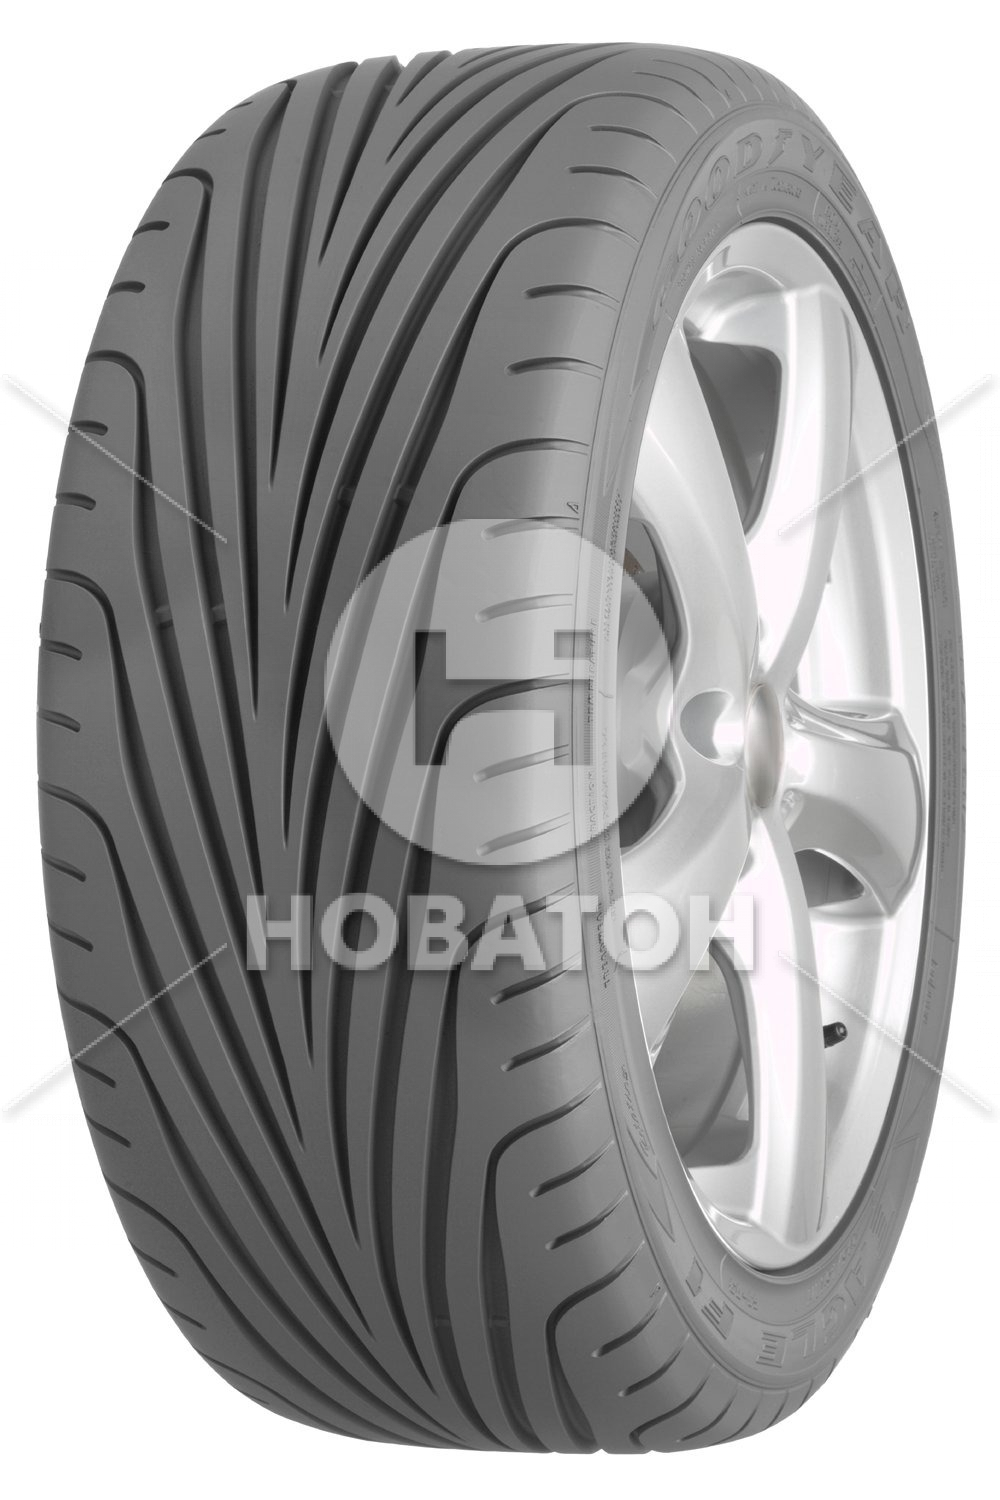 Шина 205/55ZR16 91W EAGLE F1 GSD3 (Goodyear) фото, цена